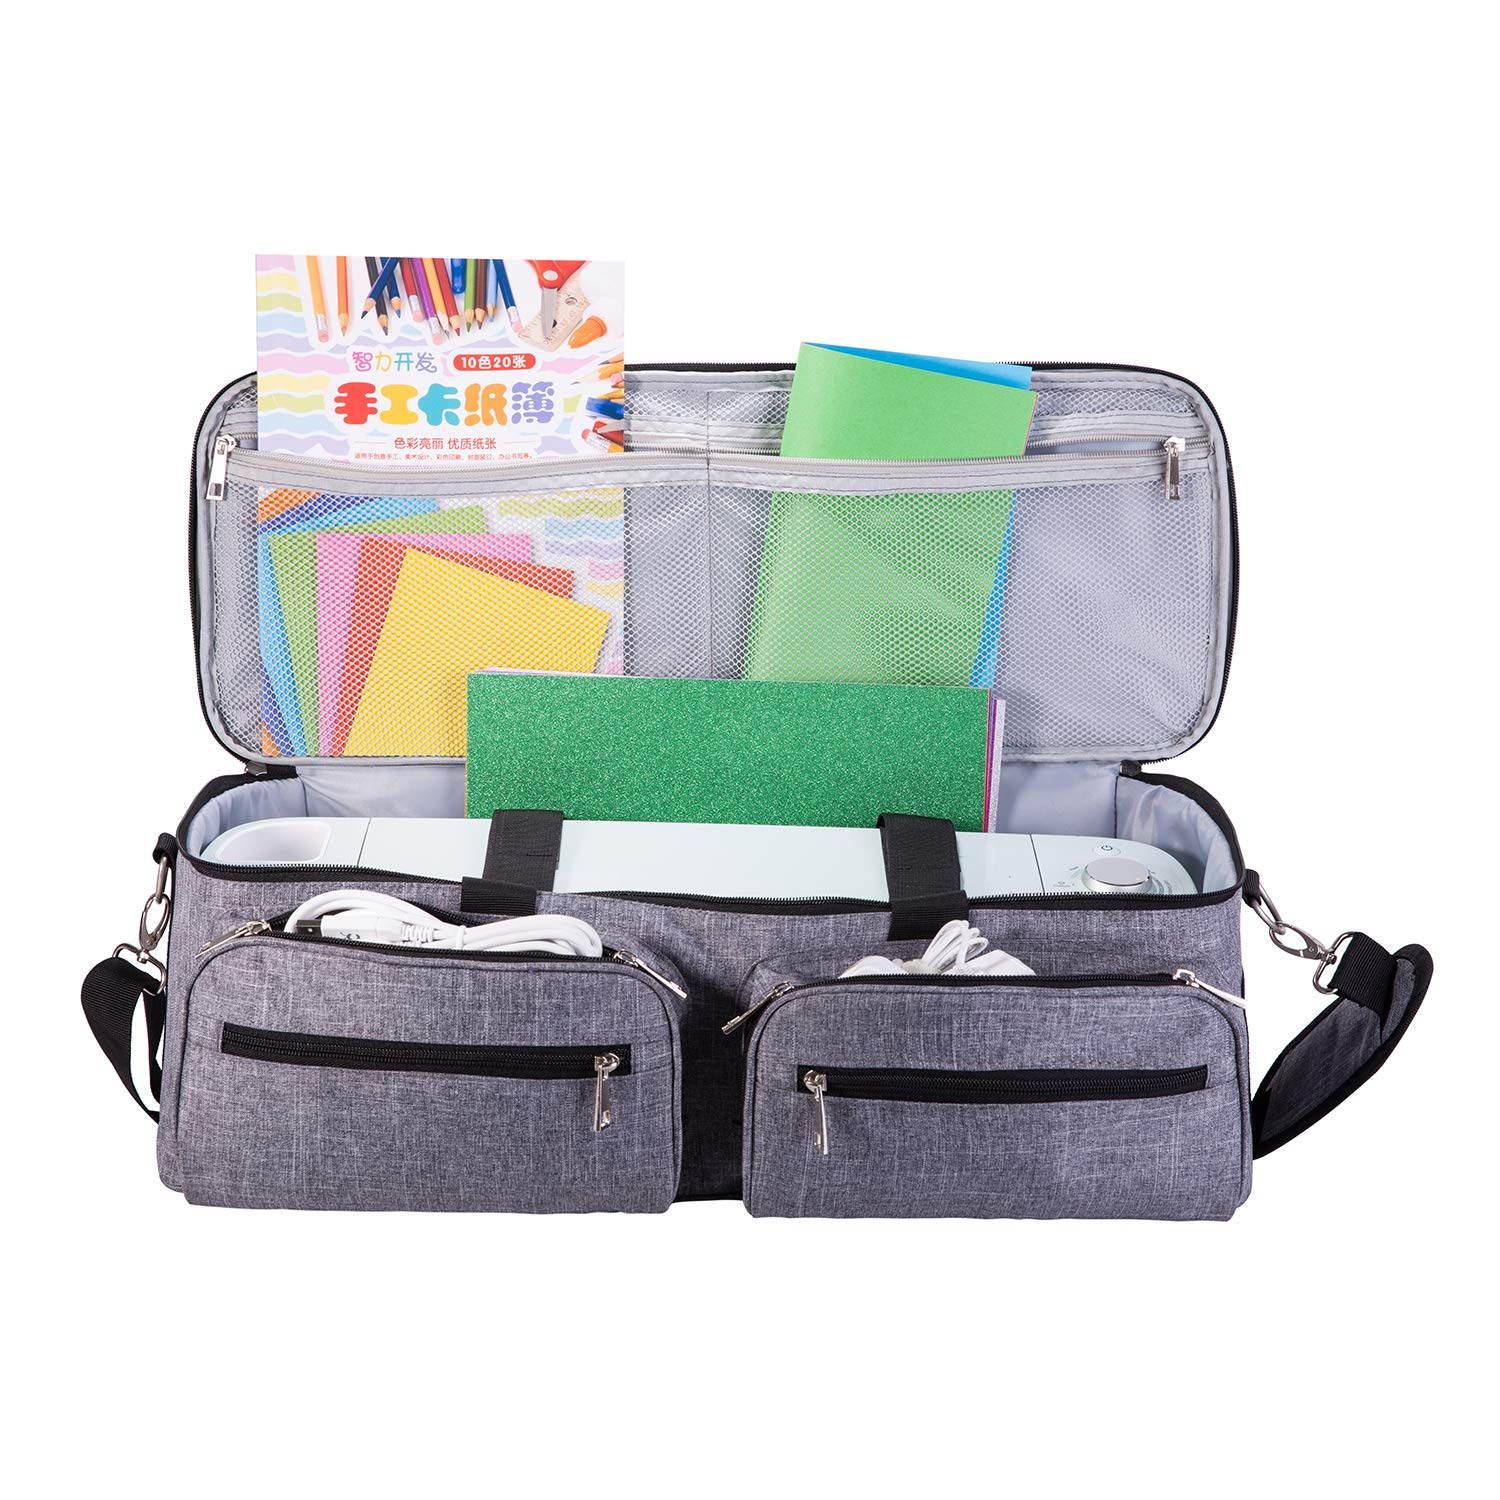 Darkgray Shoulder Bag and Tote Bag Compatible with Explore Air 2 Cut Maker and Die-Cut Machines DYJKOUG Case Bag for DIY Cutting Machine